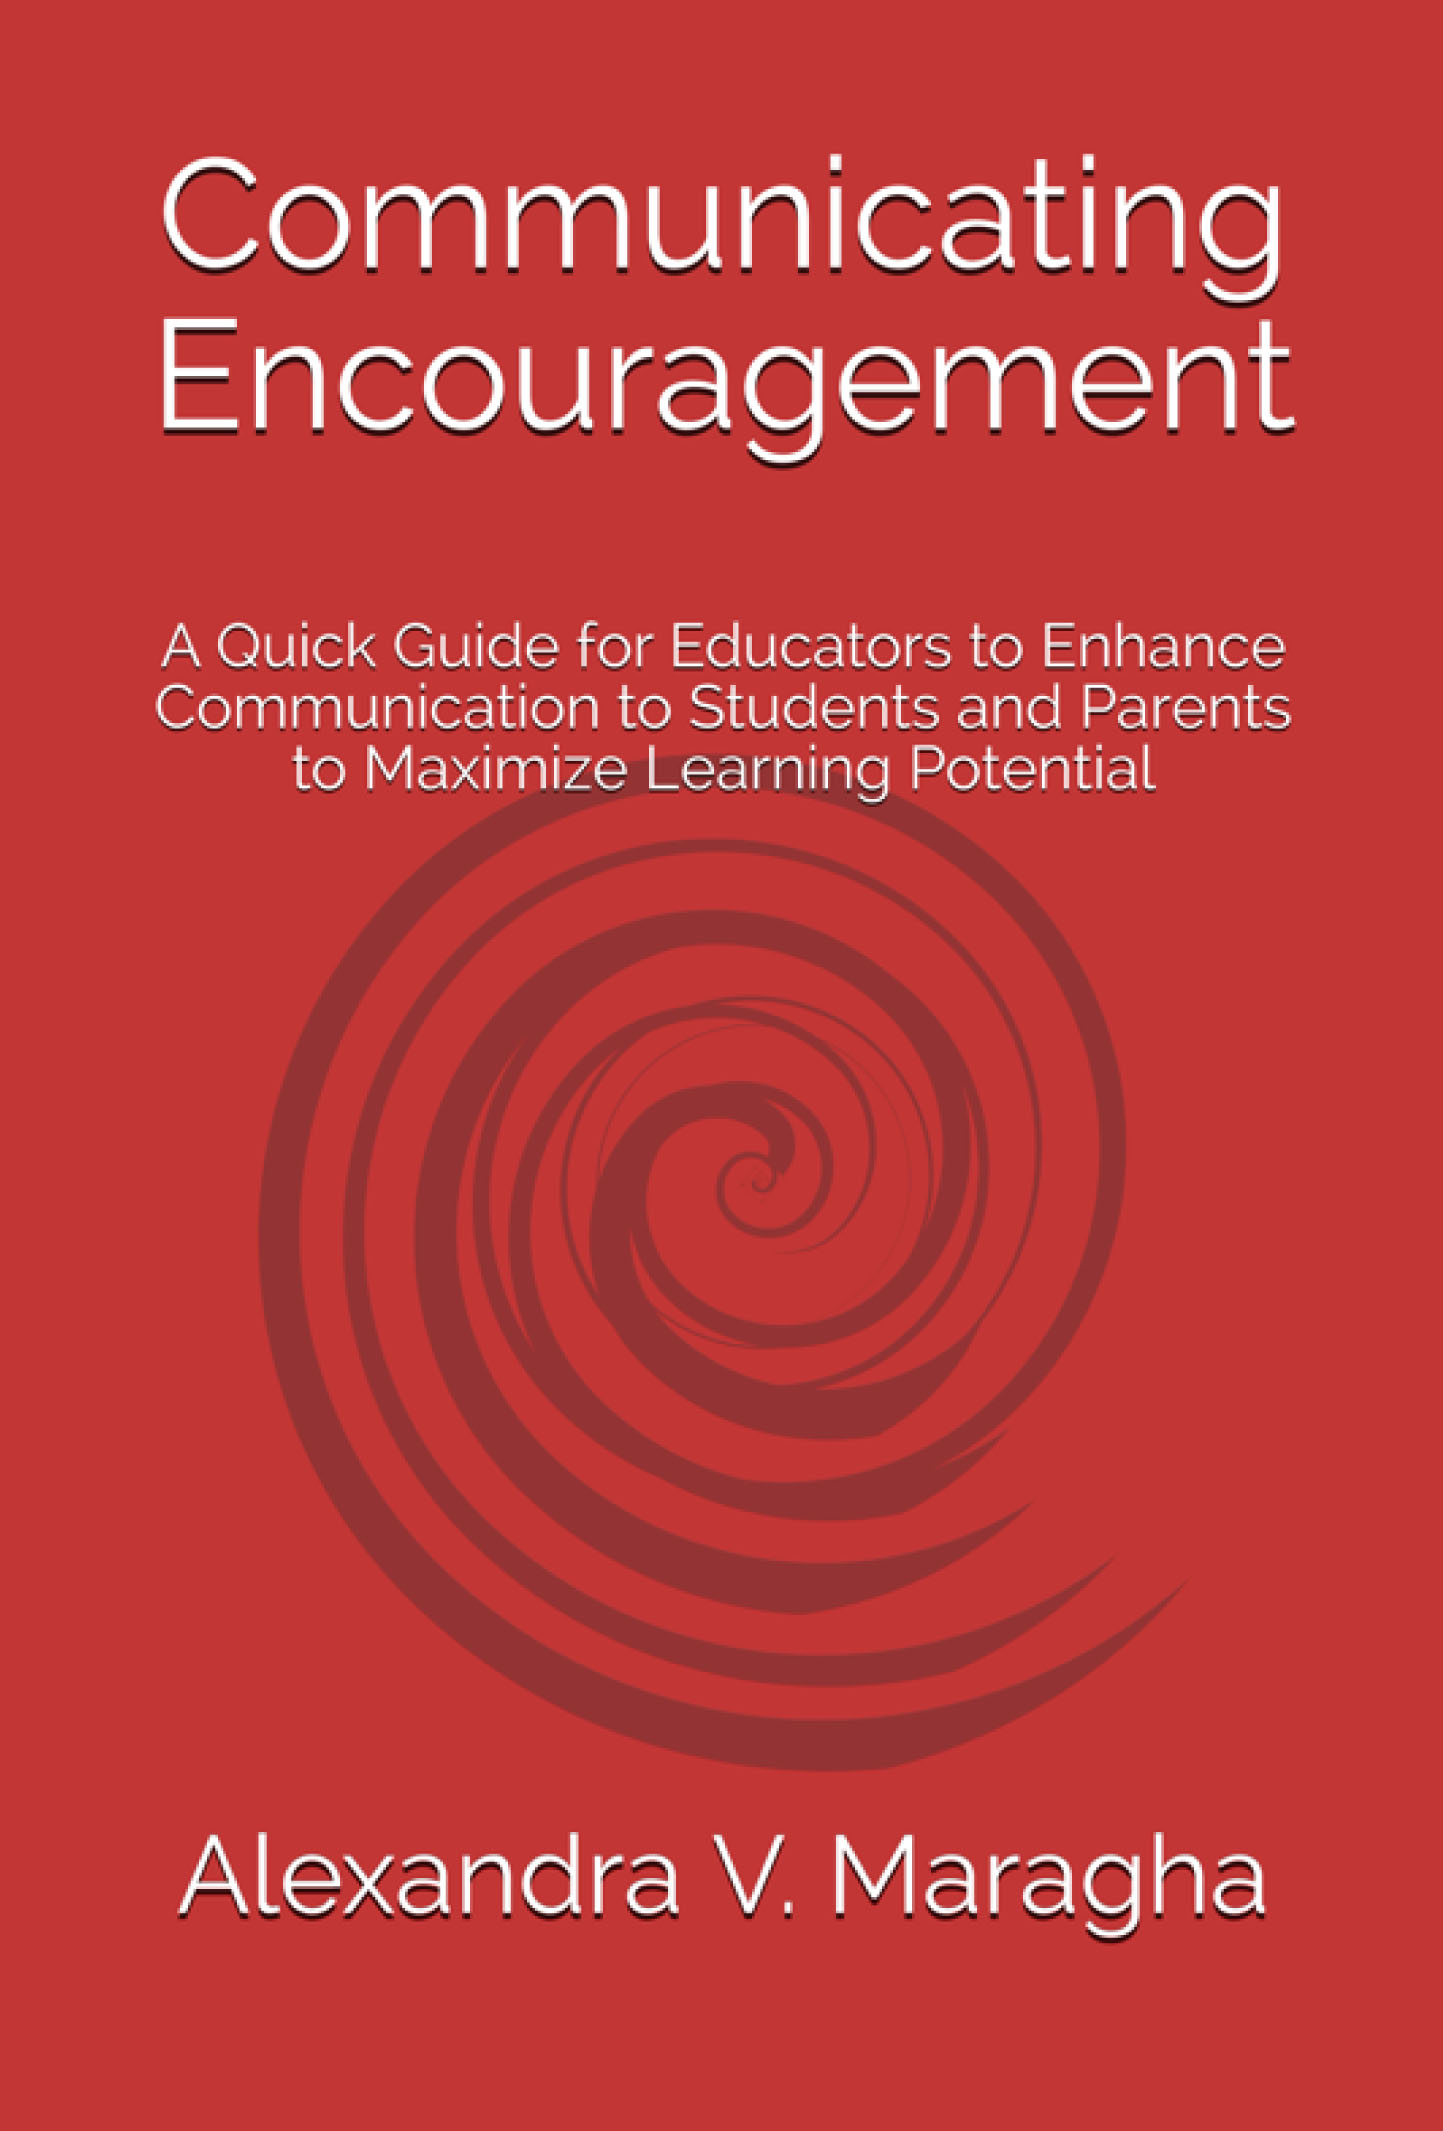 communicating encouragement cover front